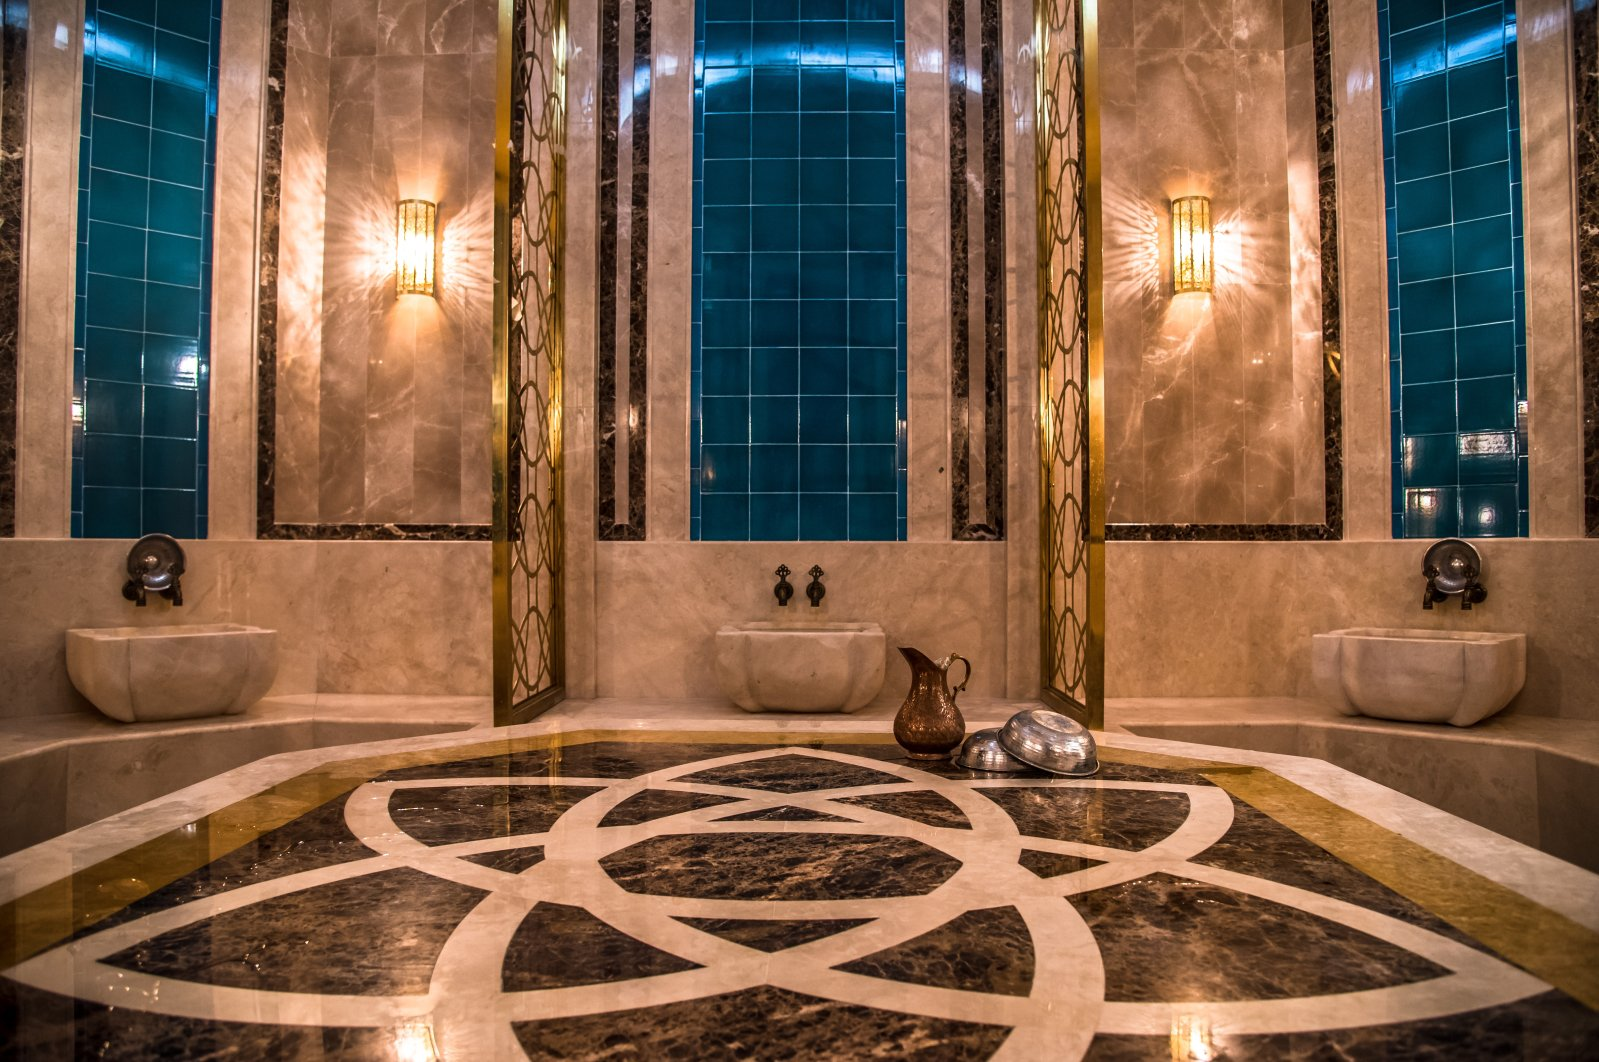 Everyone should experience an authentic Turkish bath at least once in their lifetime. (Shutterstock Photo)